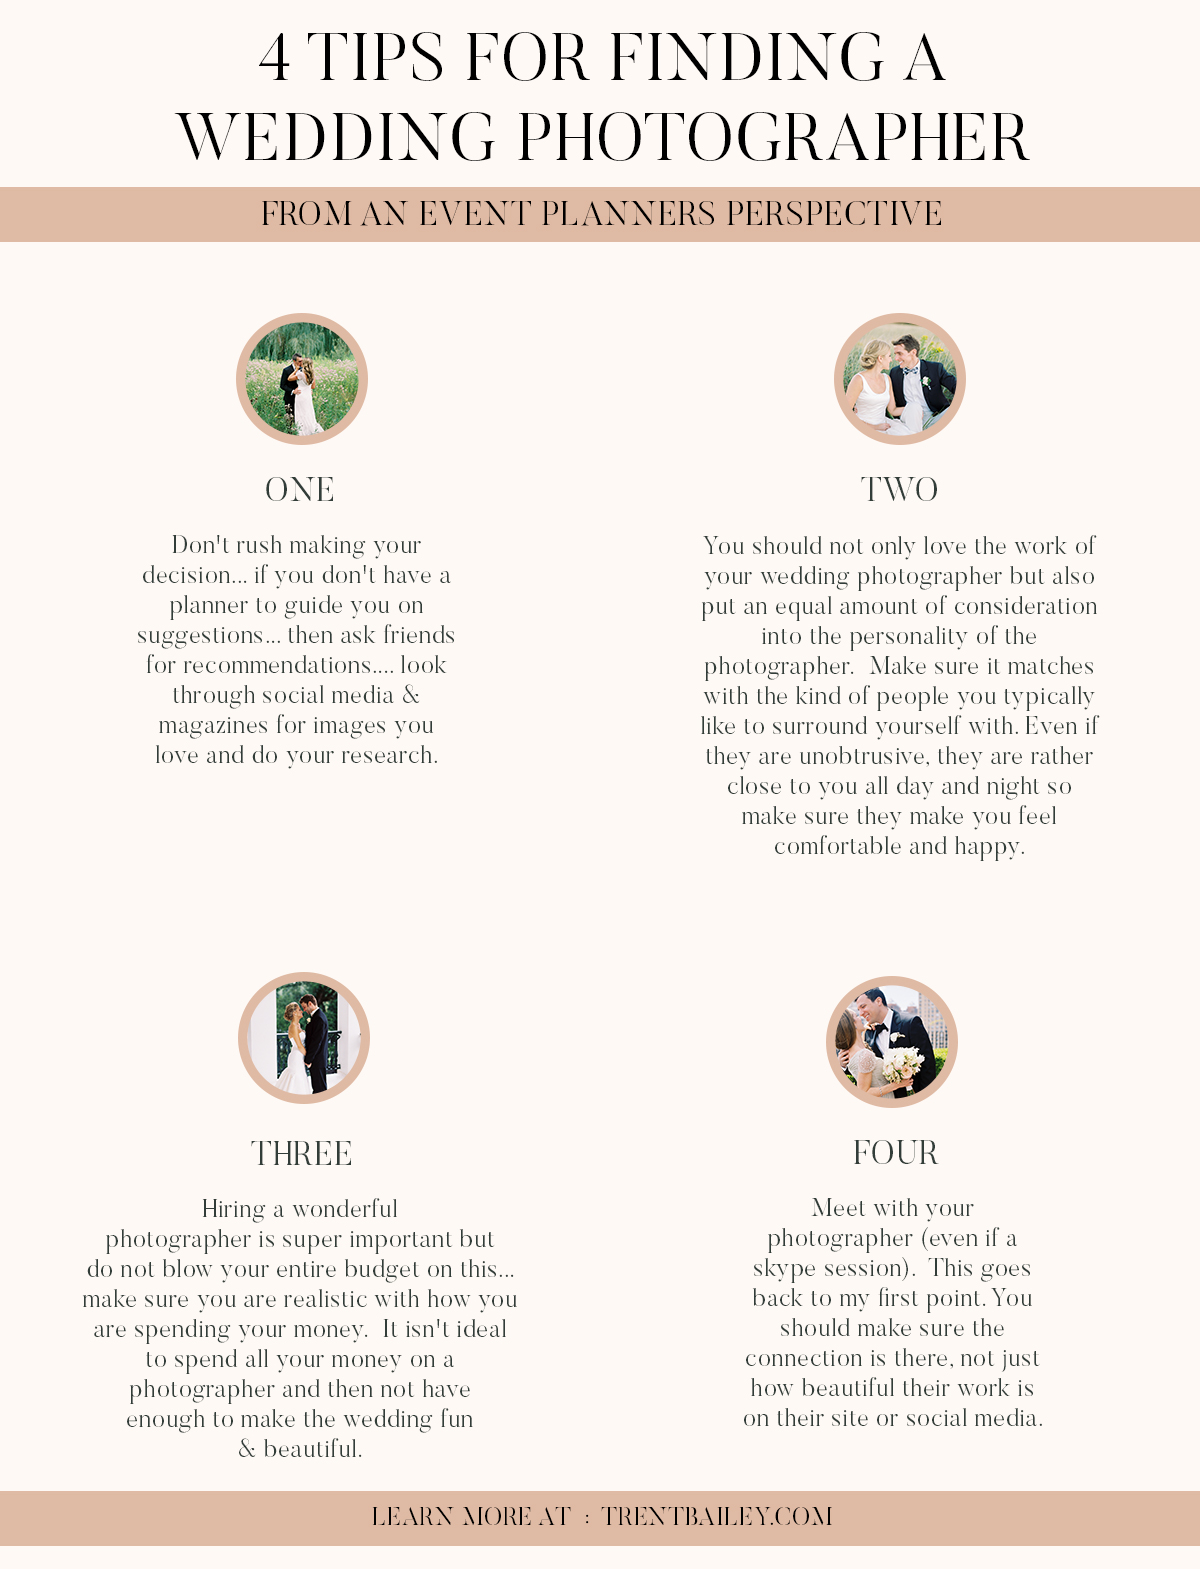 4 TIPS  01 - 4 TIPS FOR FINDING THE PERFECT PHOTOGRAPHER FROM AN EVENT PLANNER